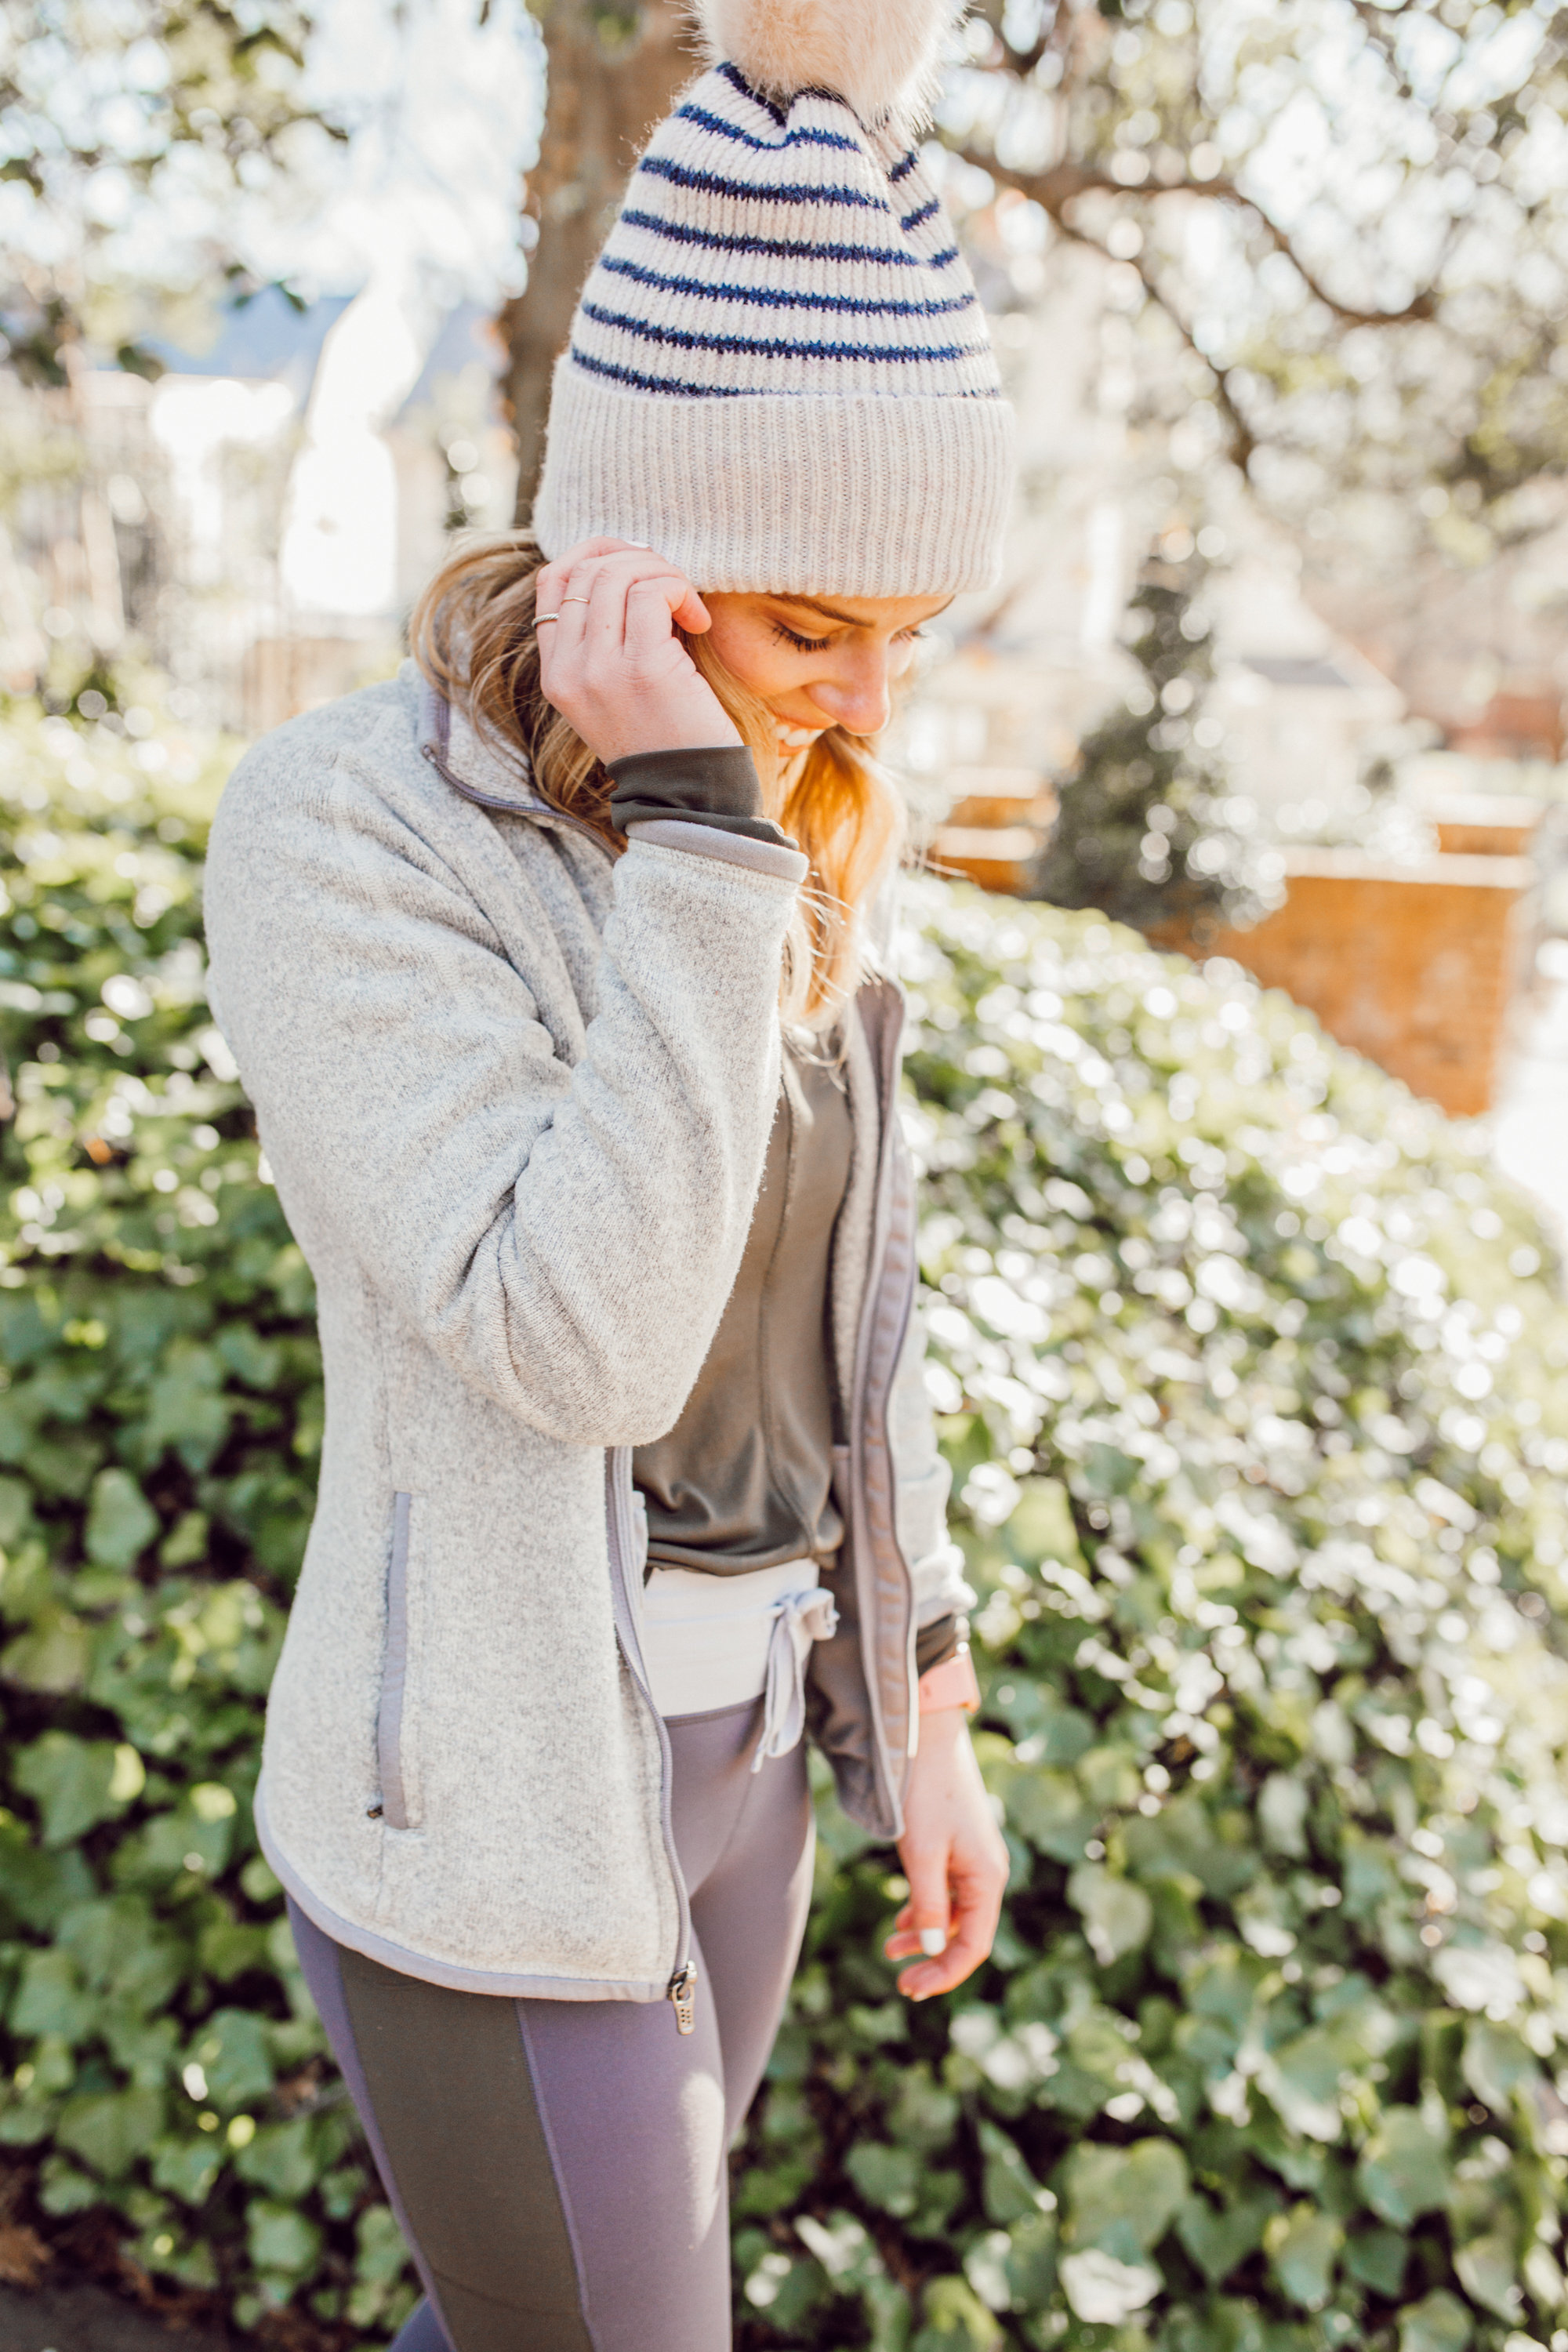 FWTFL vs BBG: How they compare and overall thoughts on the two programs | Winter Athleisure Wear | Louella Reese